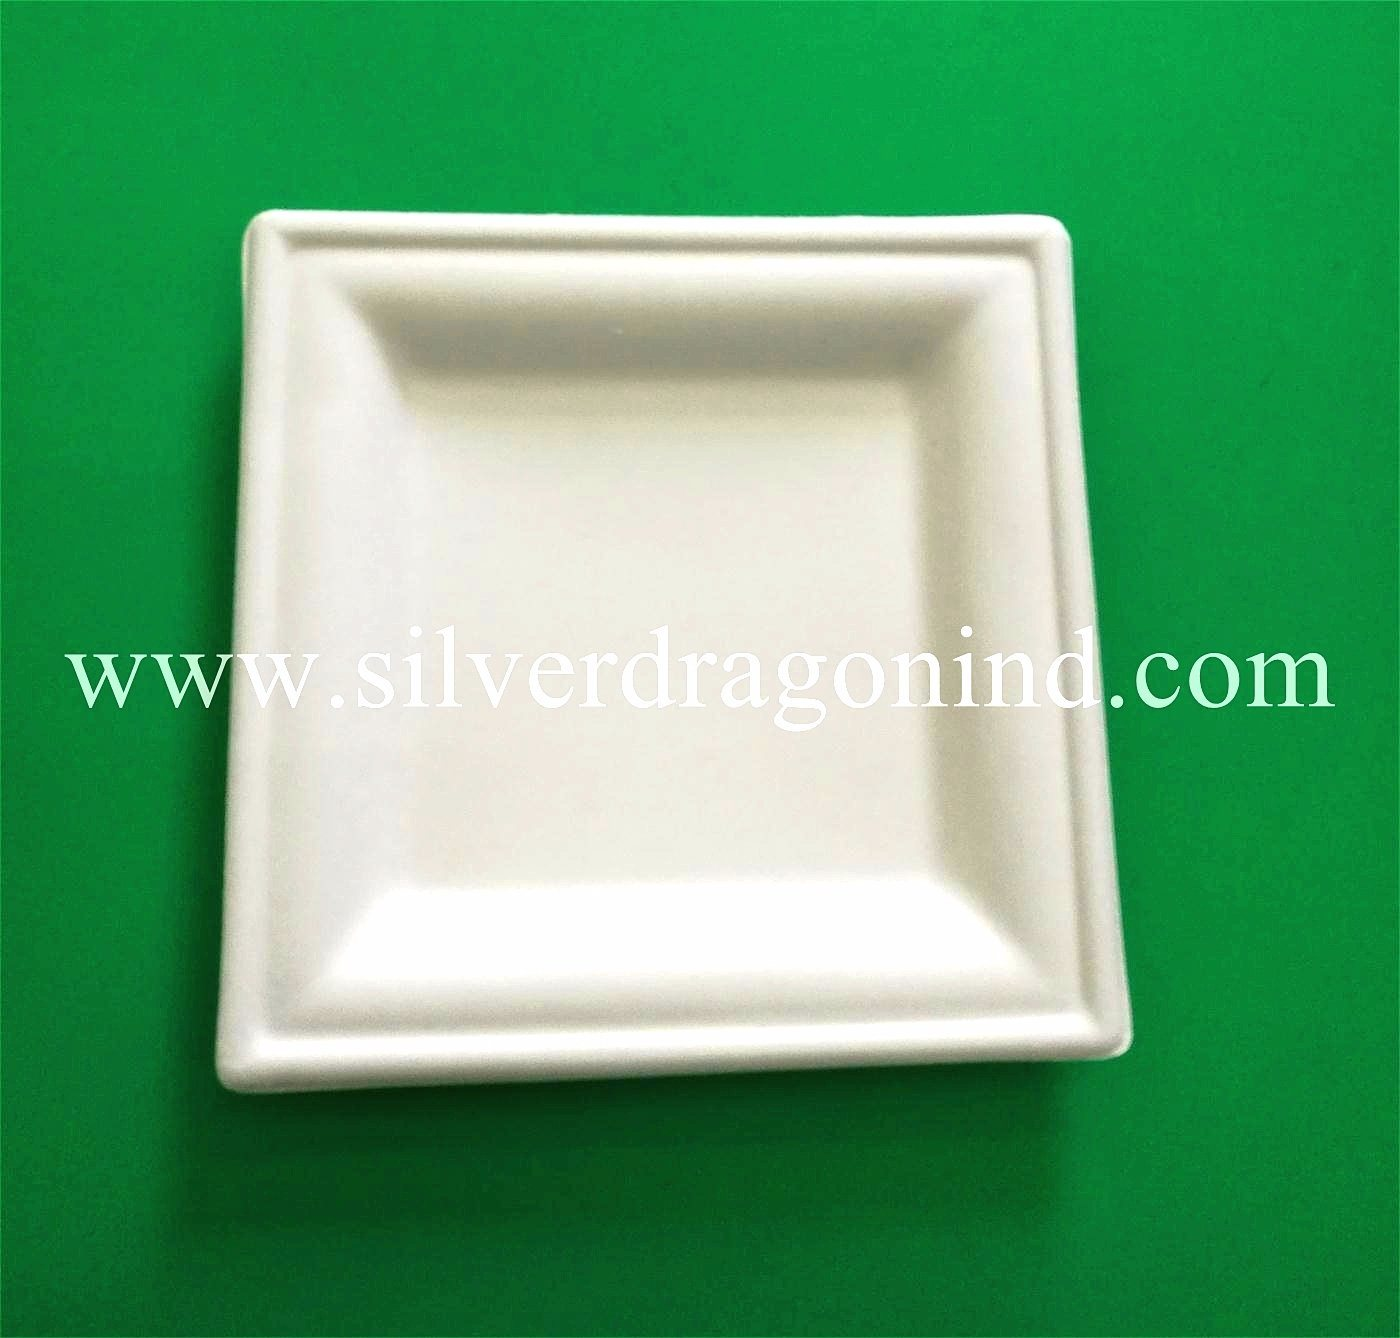 Biodegradable Disposable Compostable Sugarcane Bagasse Paper Plate